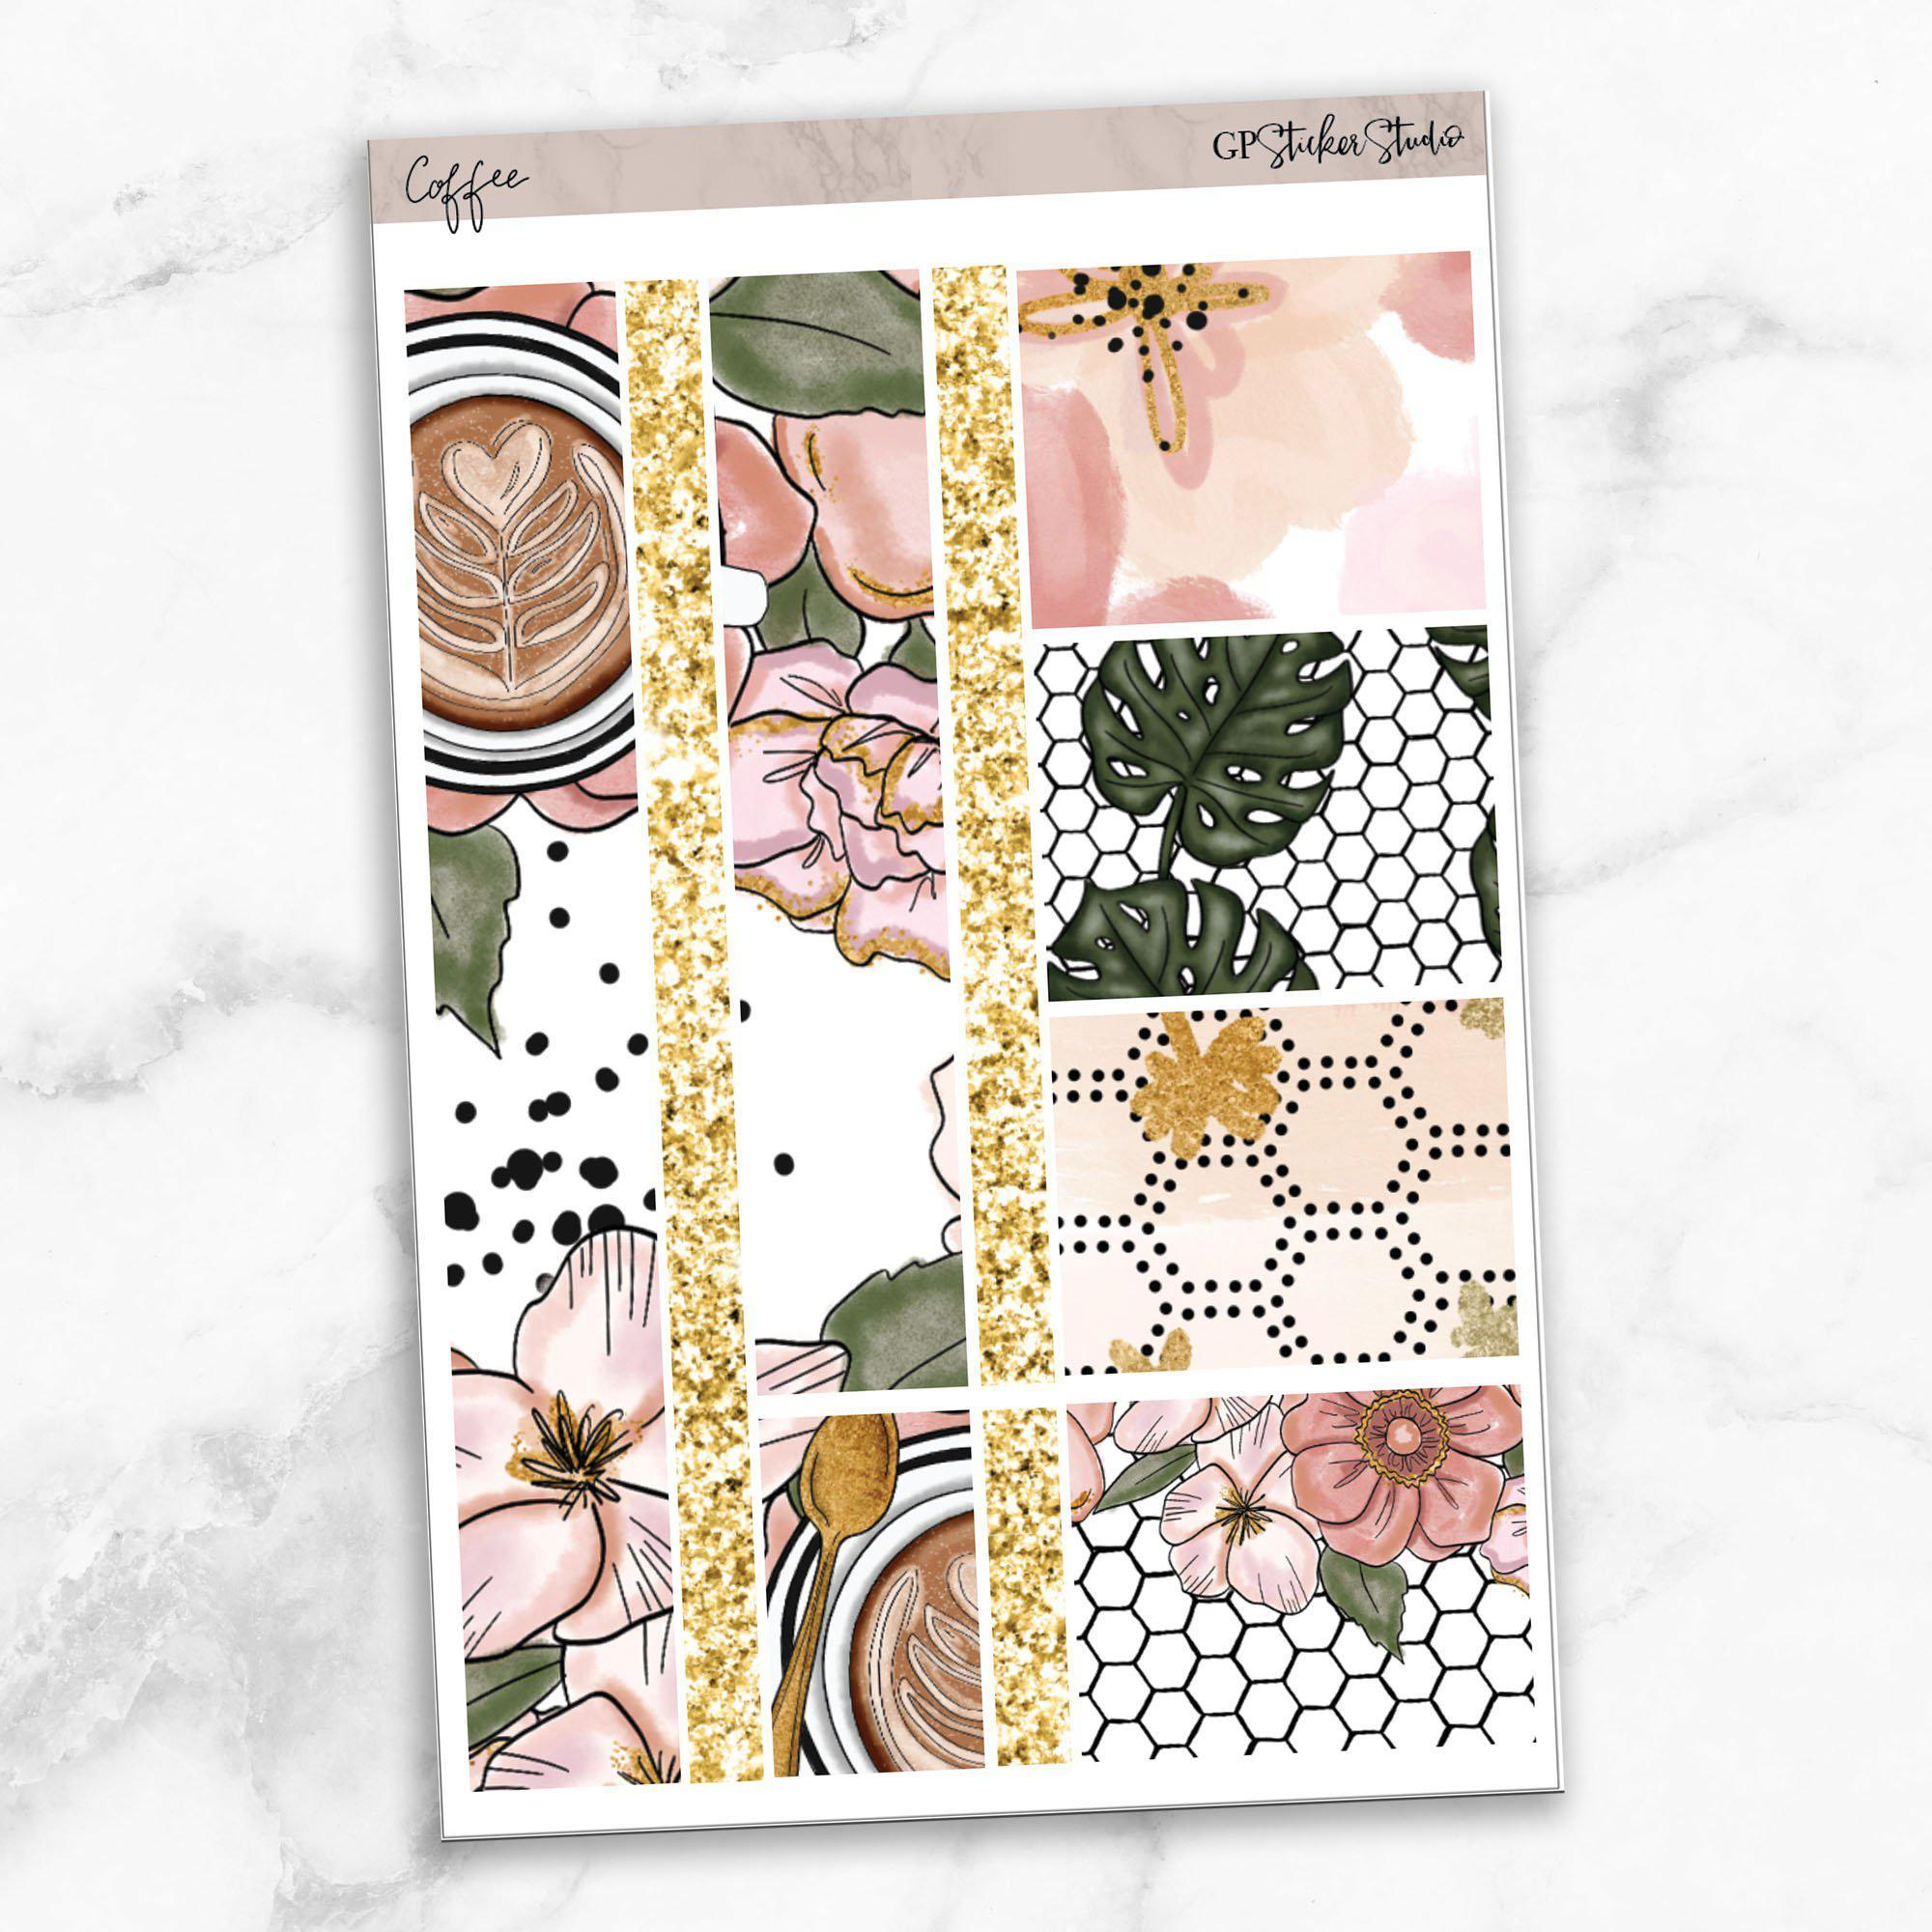 COFFEE FIRST Washi Sheet Stickers-The GP Studio